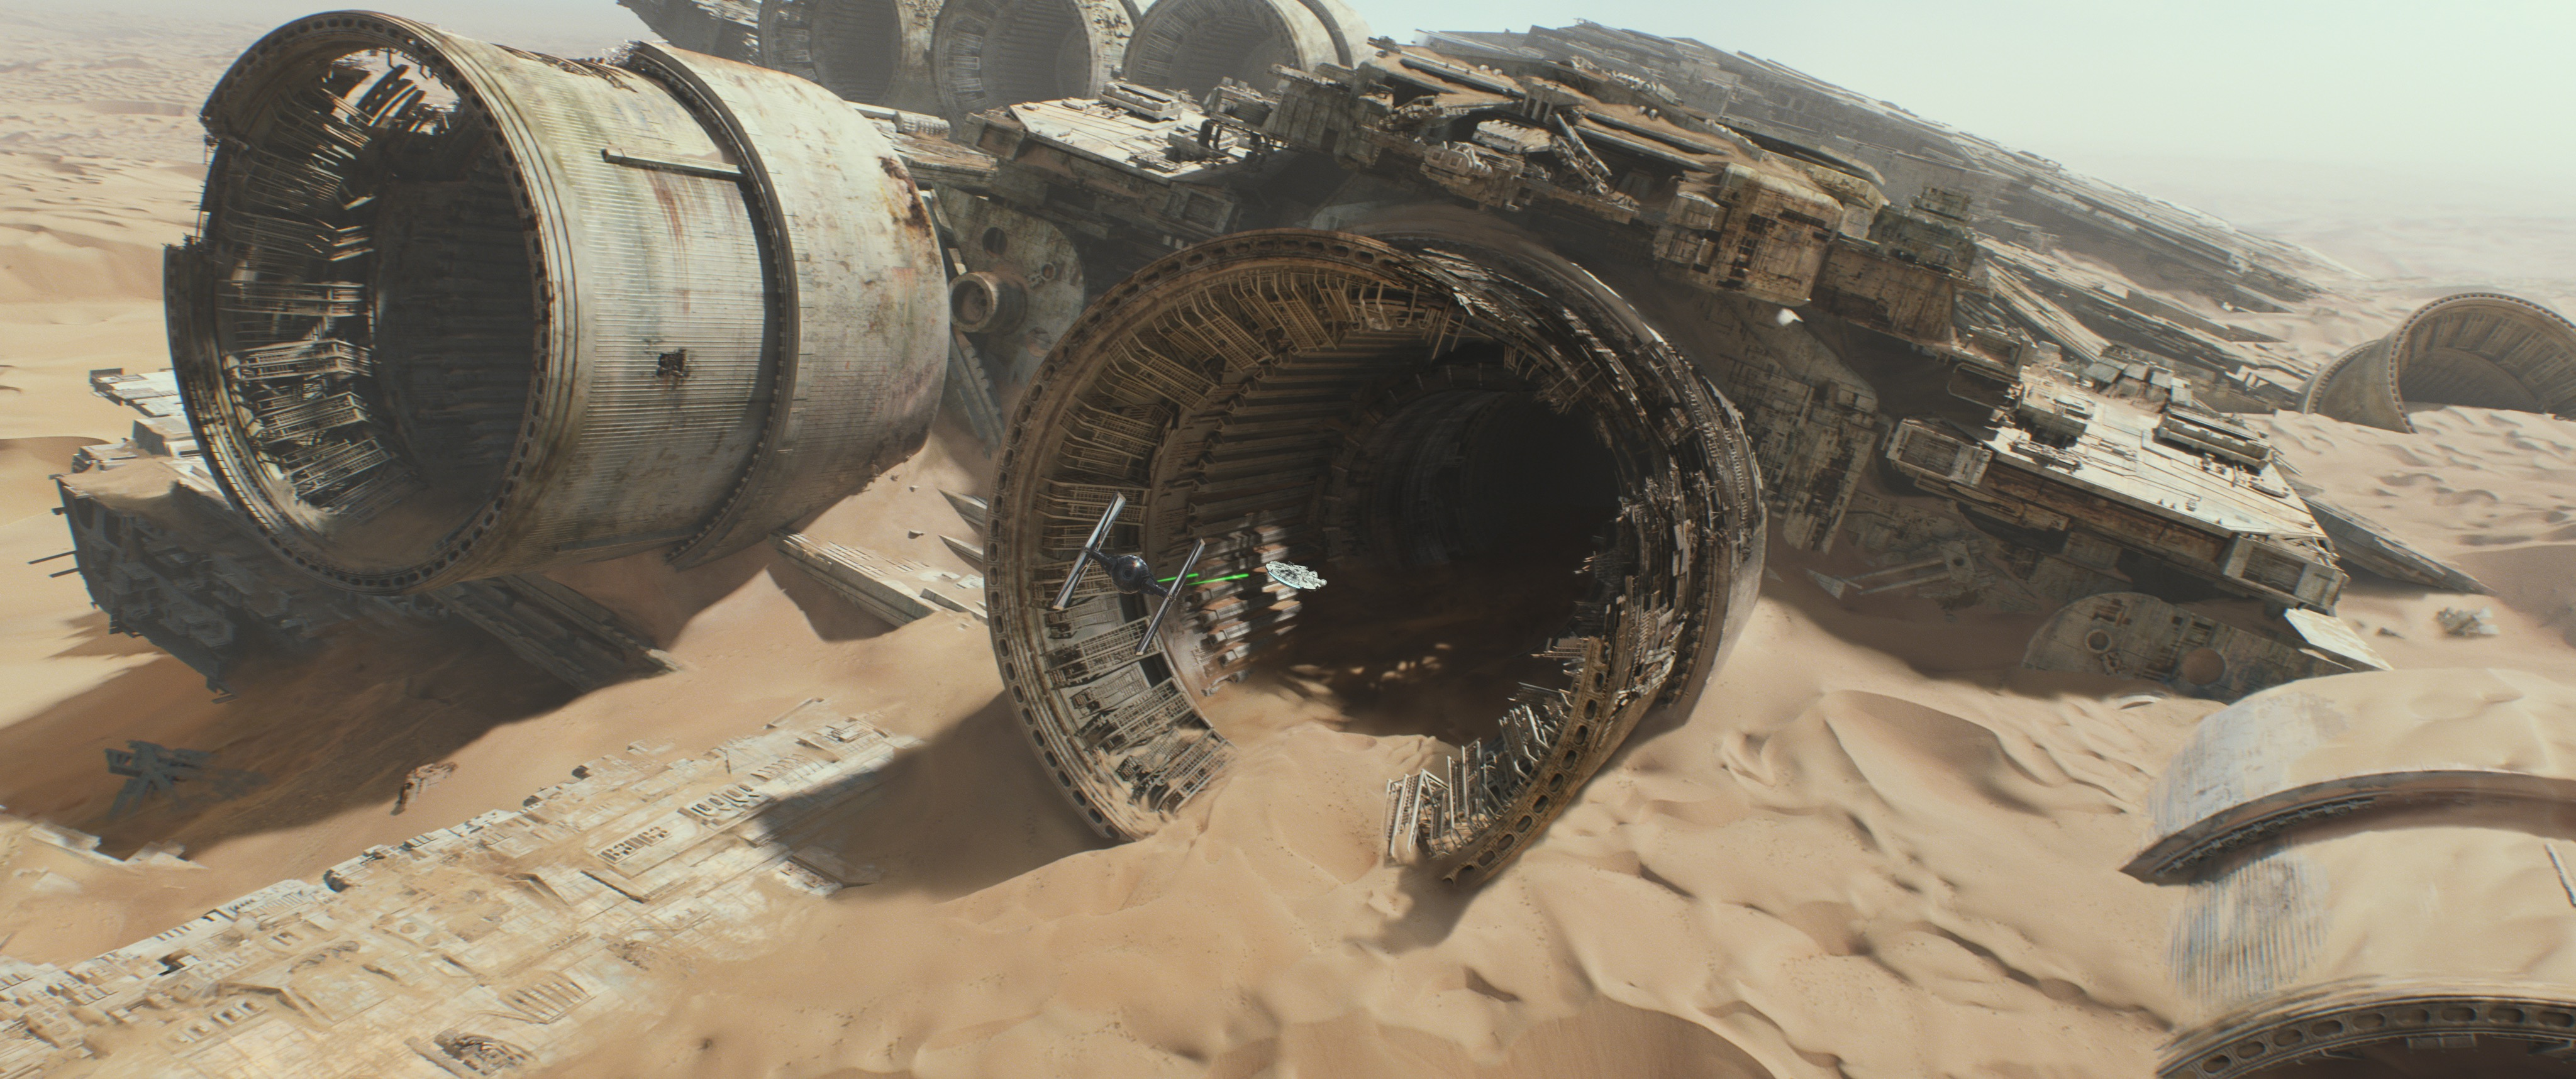 A TIE fighter and the Millennium Falcon fly toward a crashed Star Destroyer on the planet Jakku